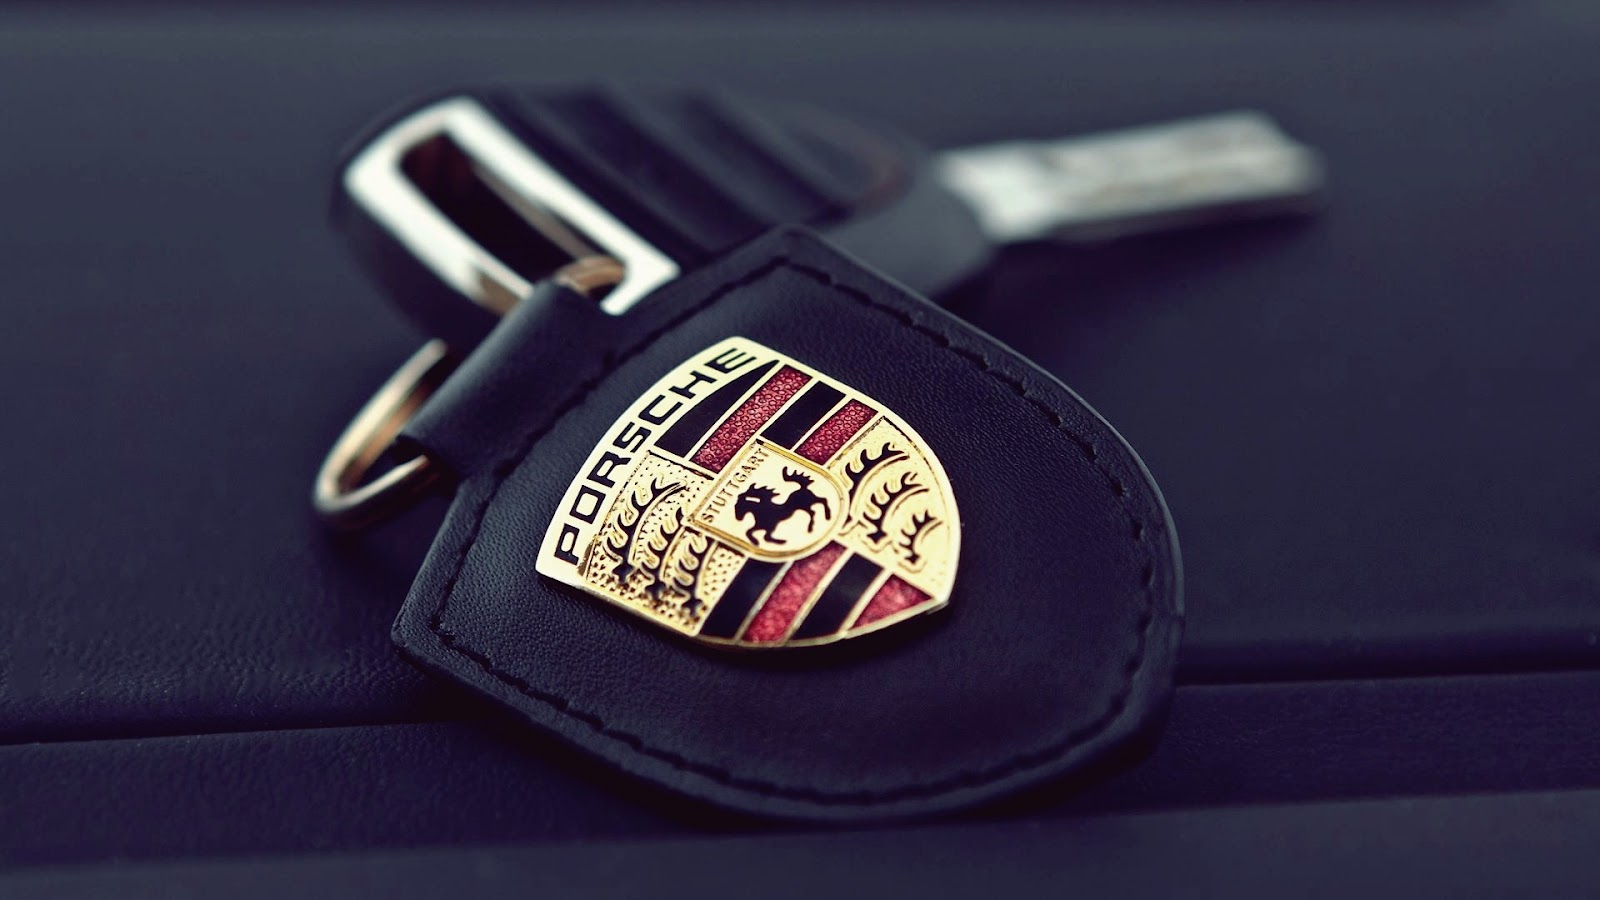 porsche key holder close up photo hd wallpaper ~ hd car wallpapers